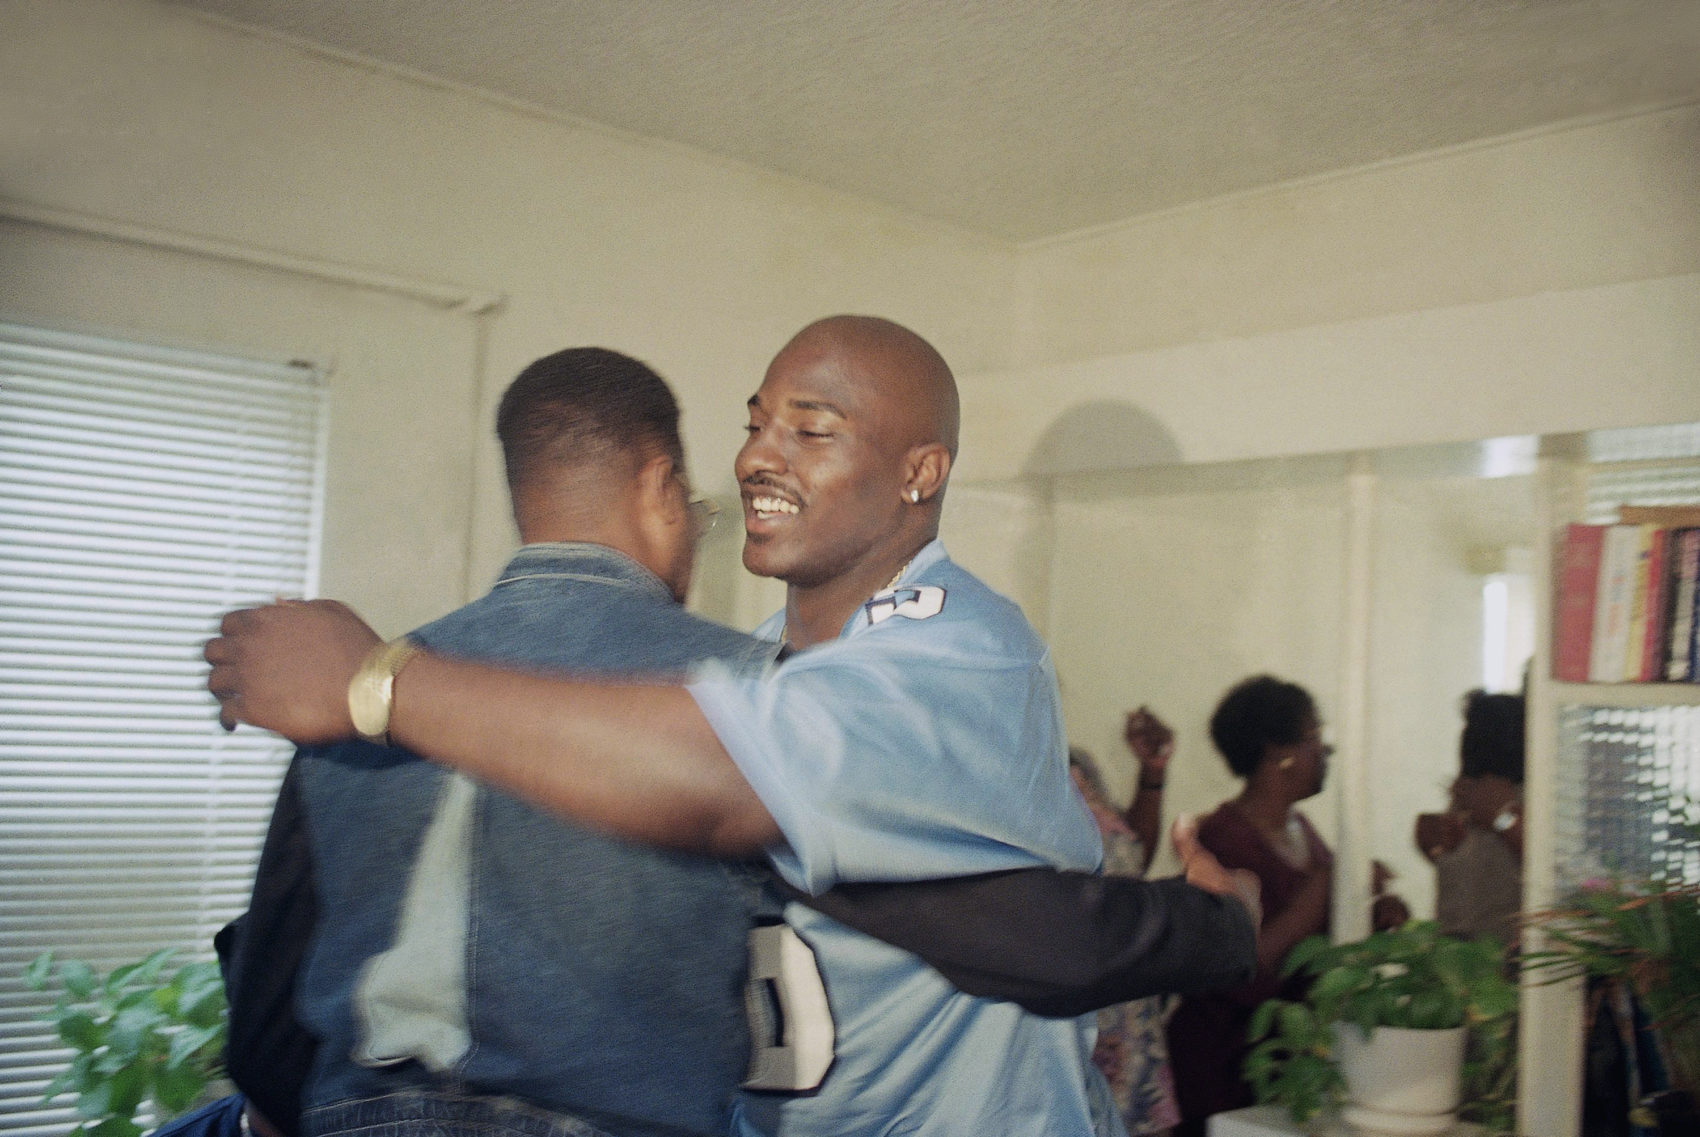 Wiley, donning his No. 5 Columbia jersey, celebrates being selected in the 1997 NFL Draft. (AP Photo/John Haynes)